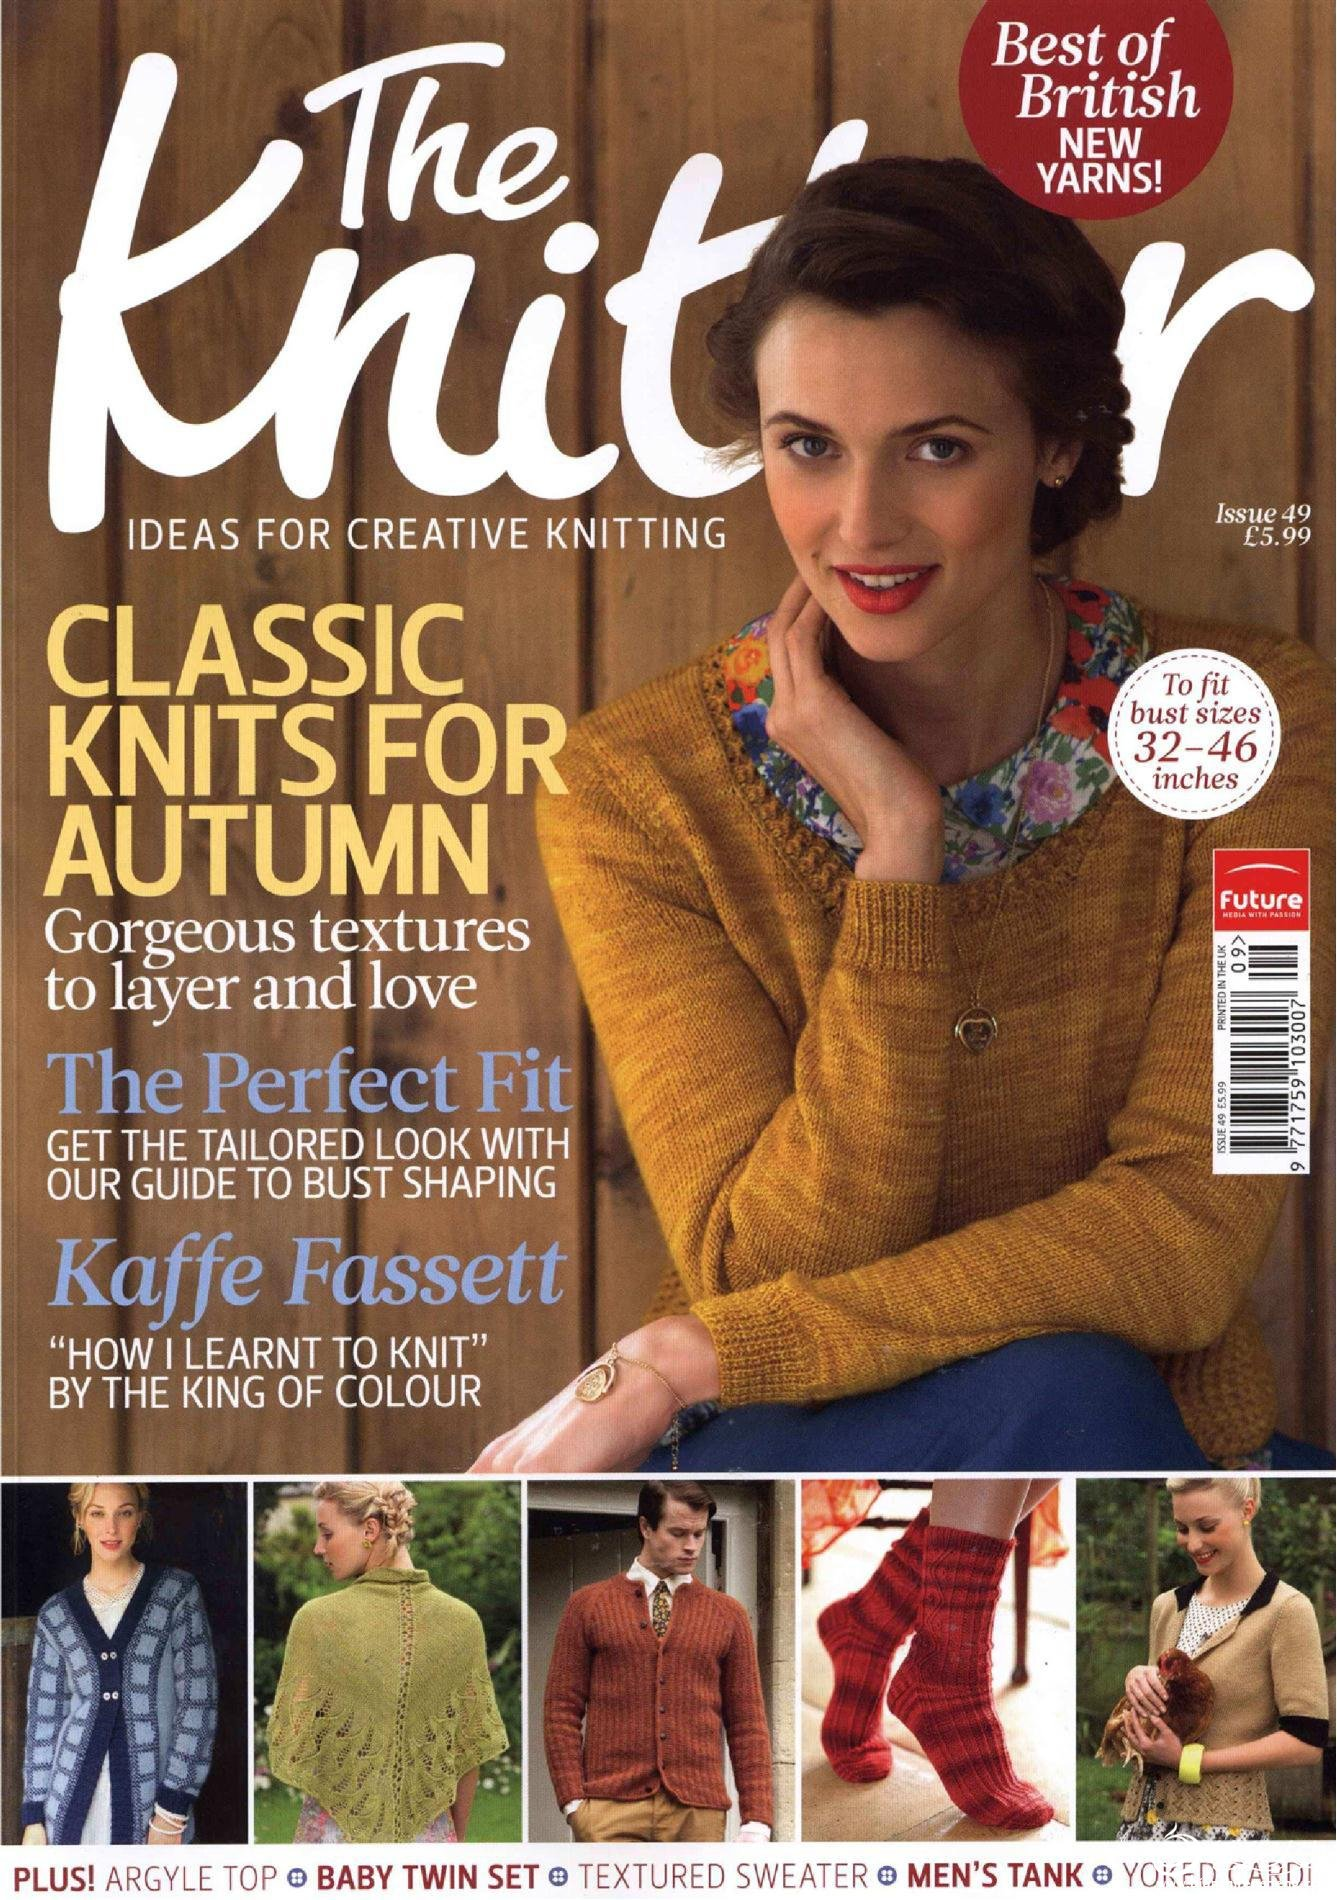 the-knitter-issue-49-2012.jpeg